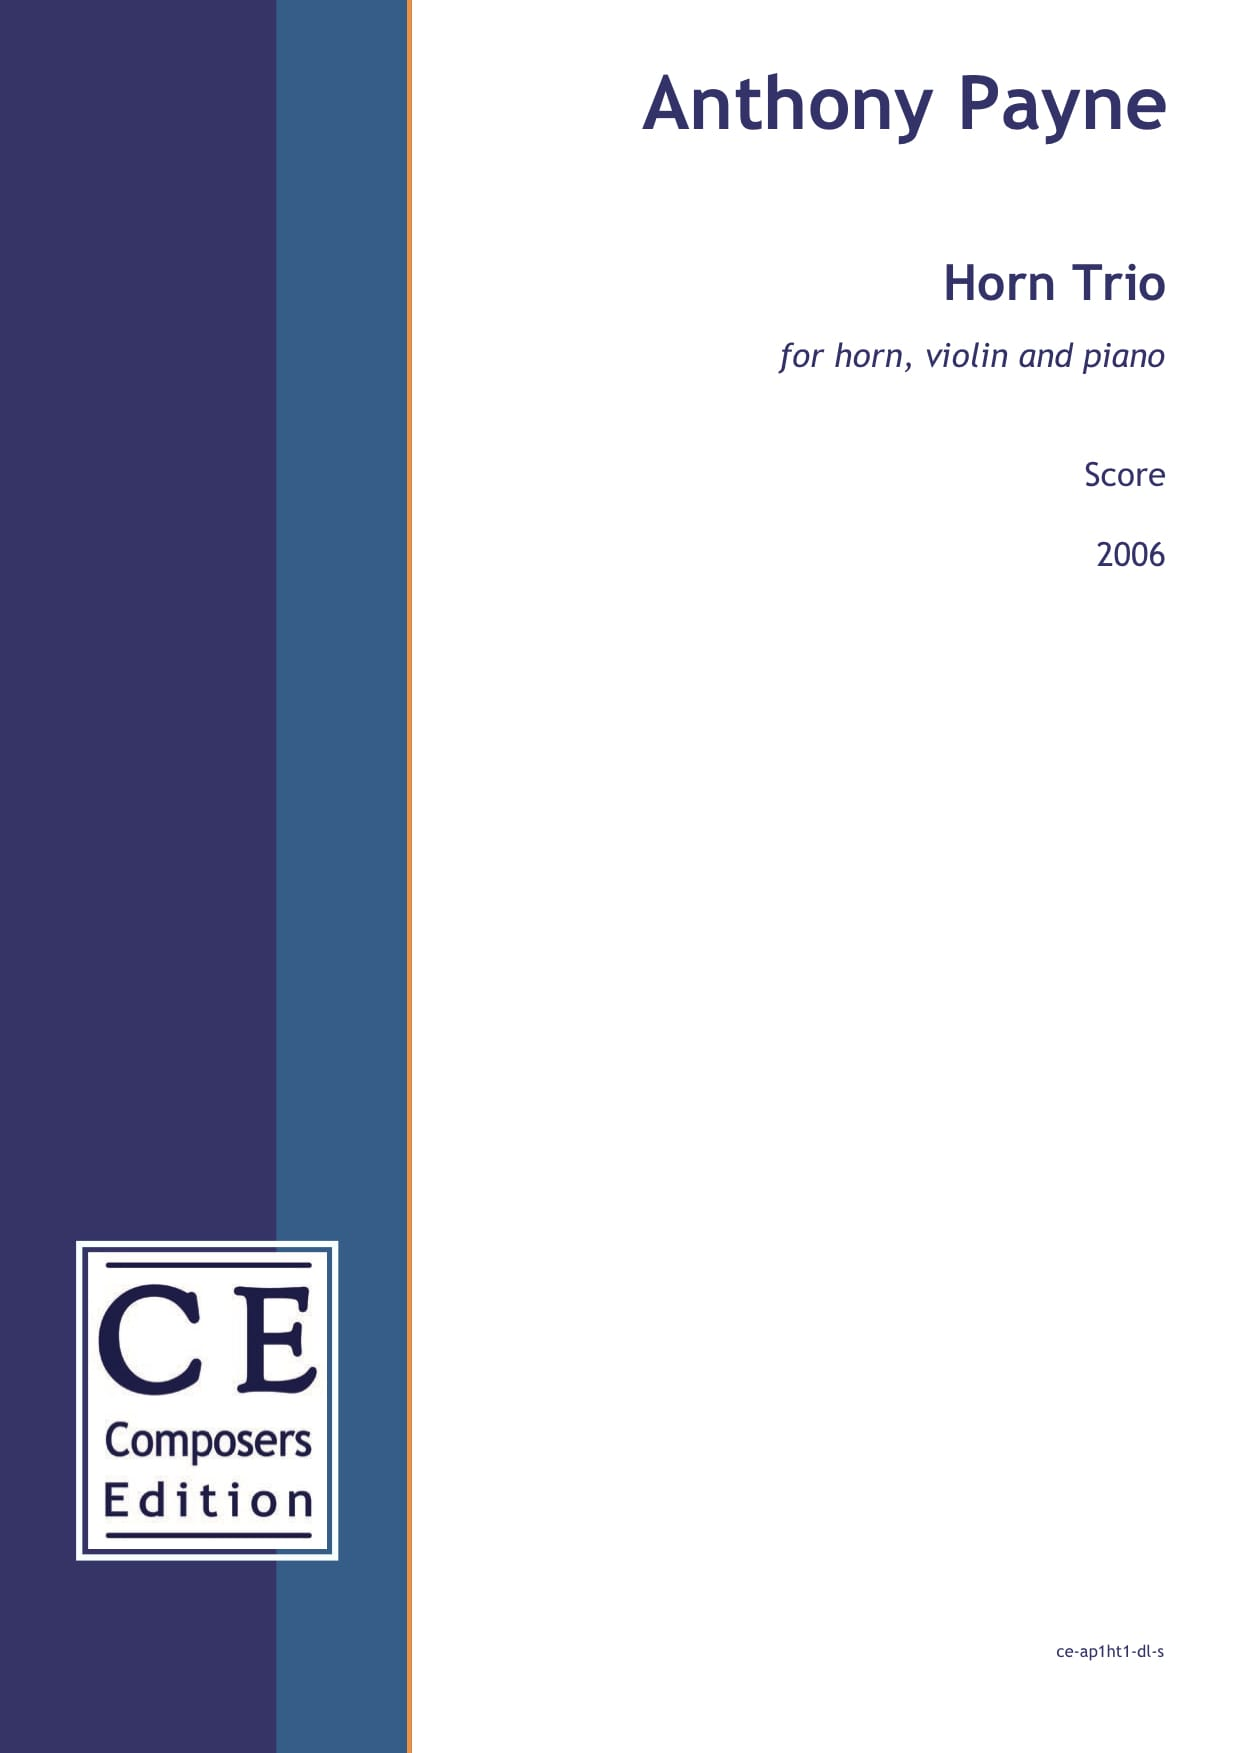 Anthony Payne: Horn Trio for horn, violin and piano